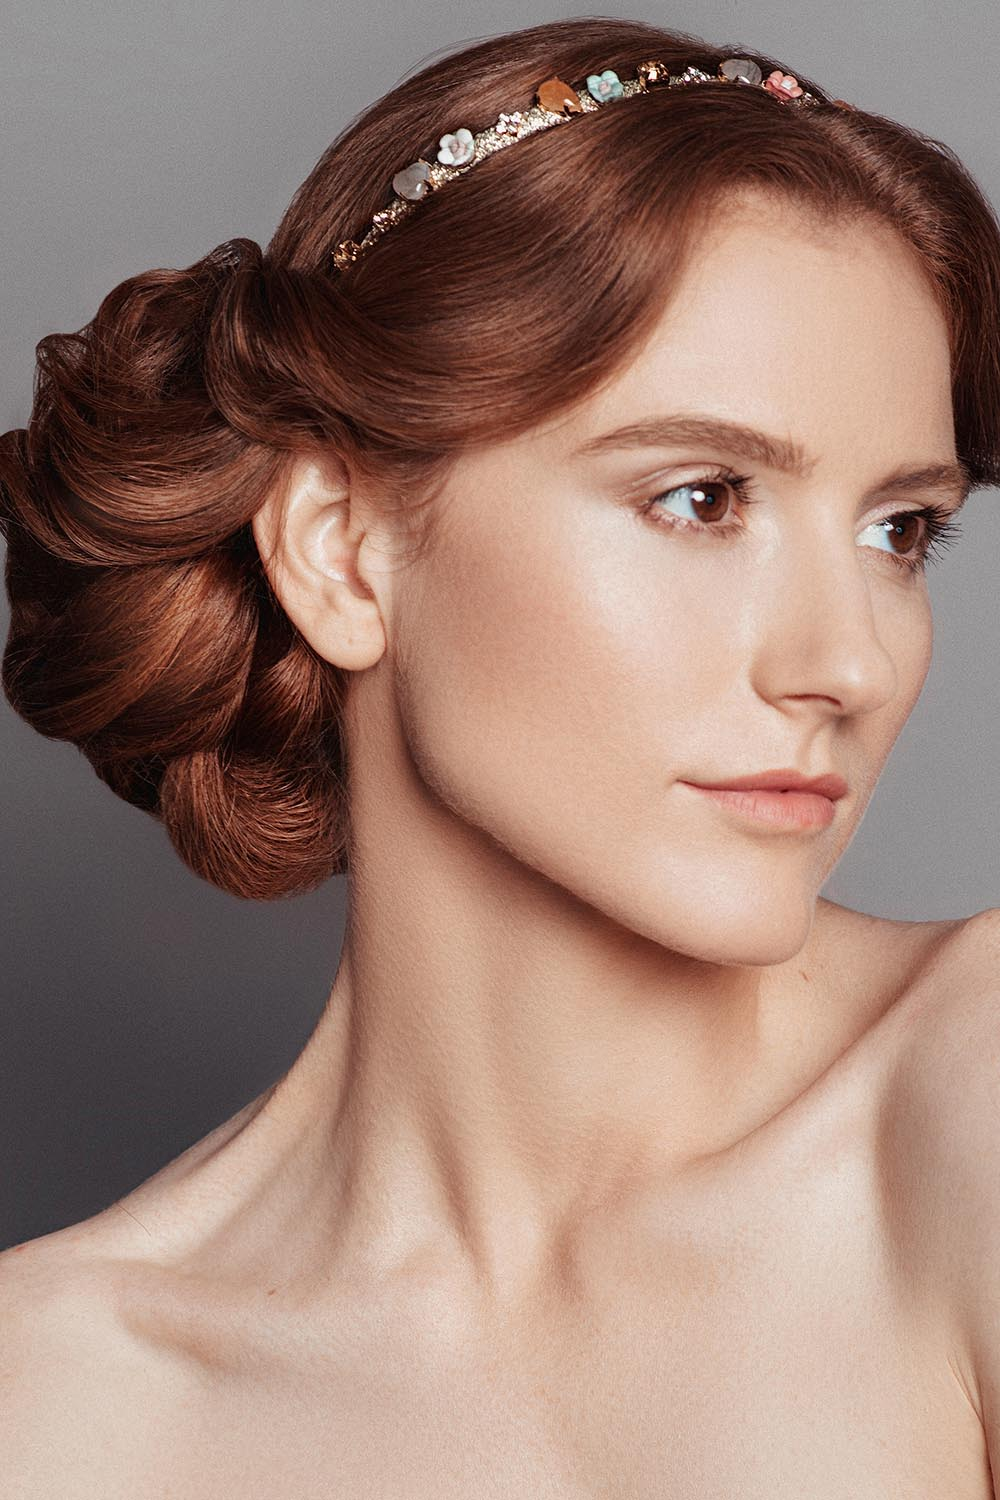 Hairstyling Course for Makeup Artists 01.jpg